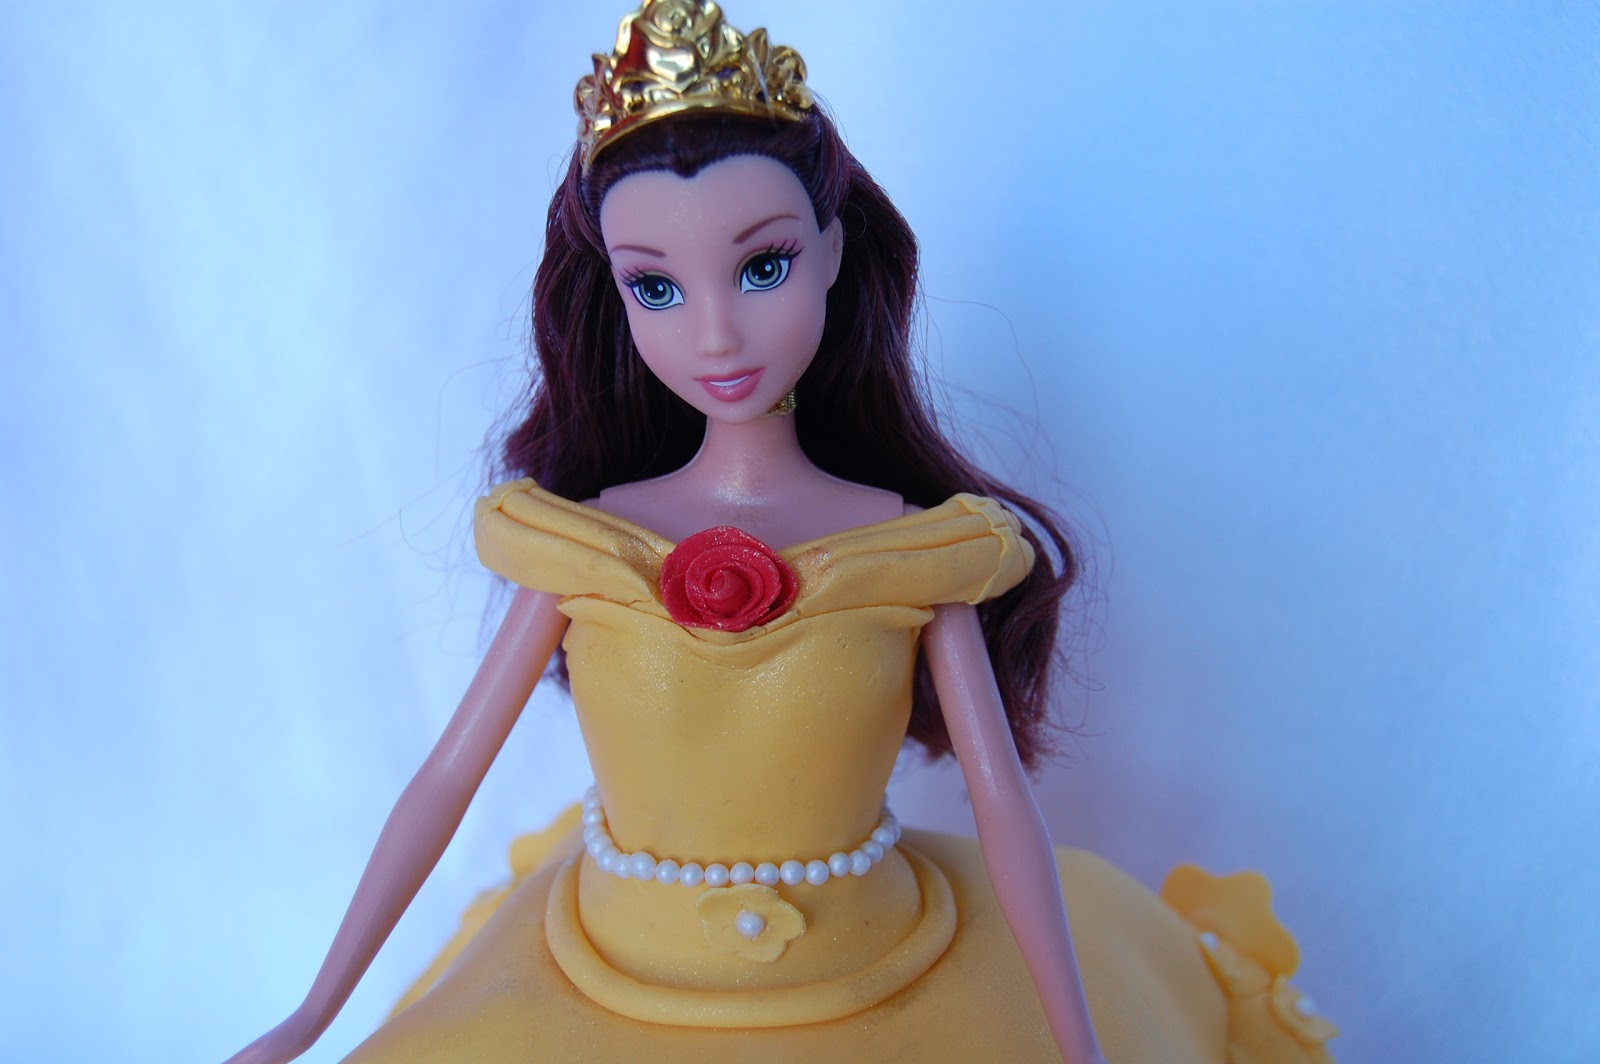 CUSTOMISED CAKES BY JEN Disney Princess Belle Cake